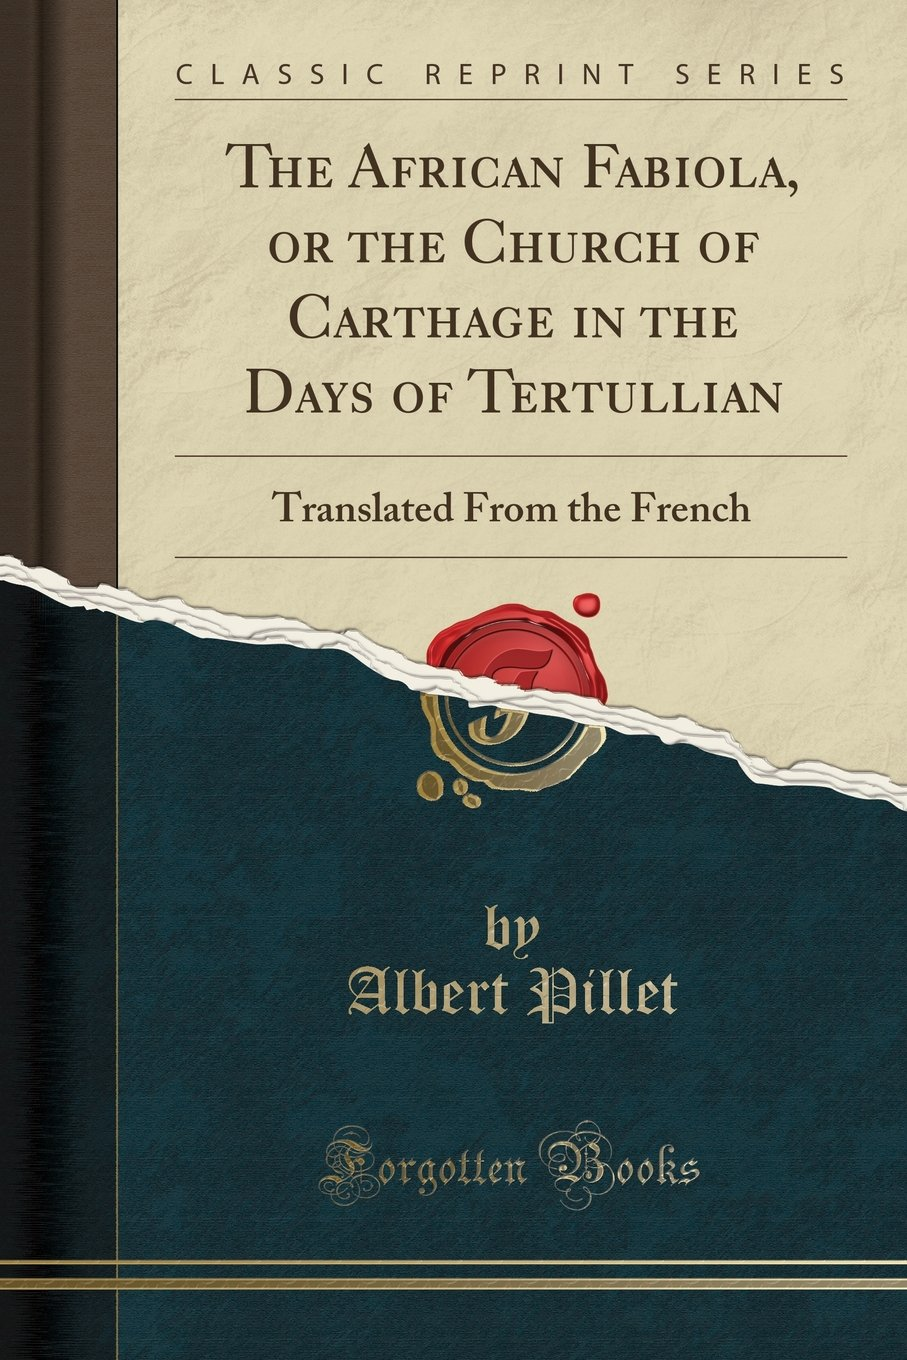 Download The African Fabiola, or the Church of Carthage in the Days of Tertullian: Translated From the French (Classic Reprint) ebook